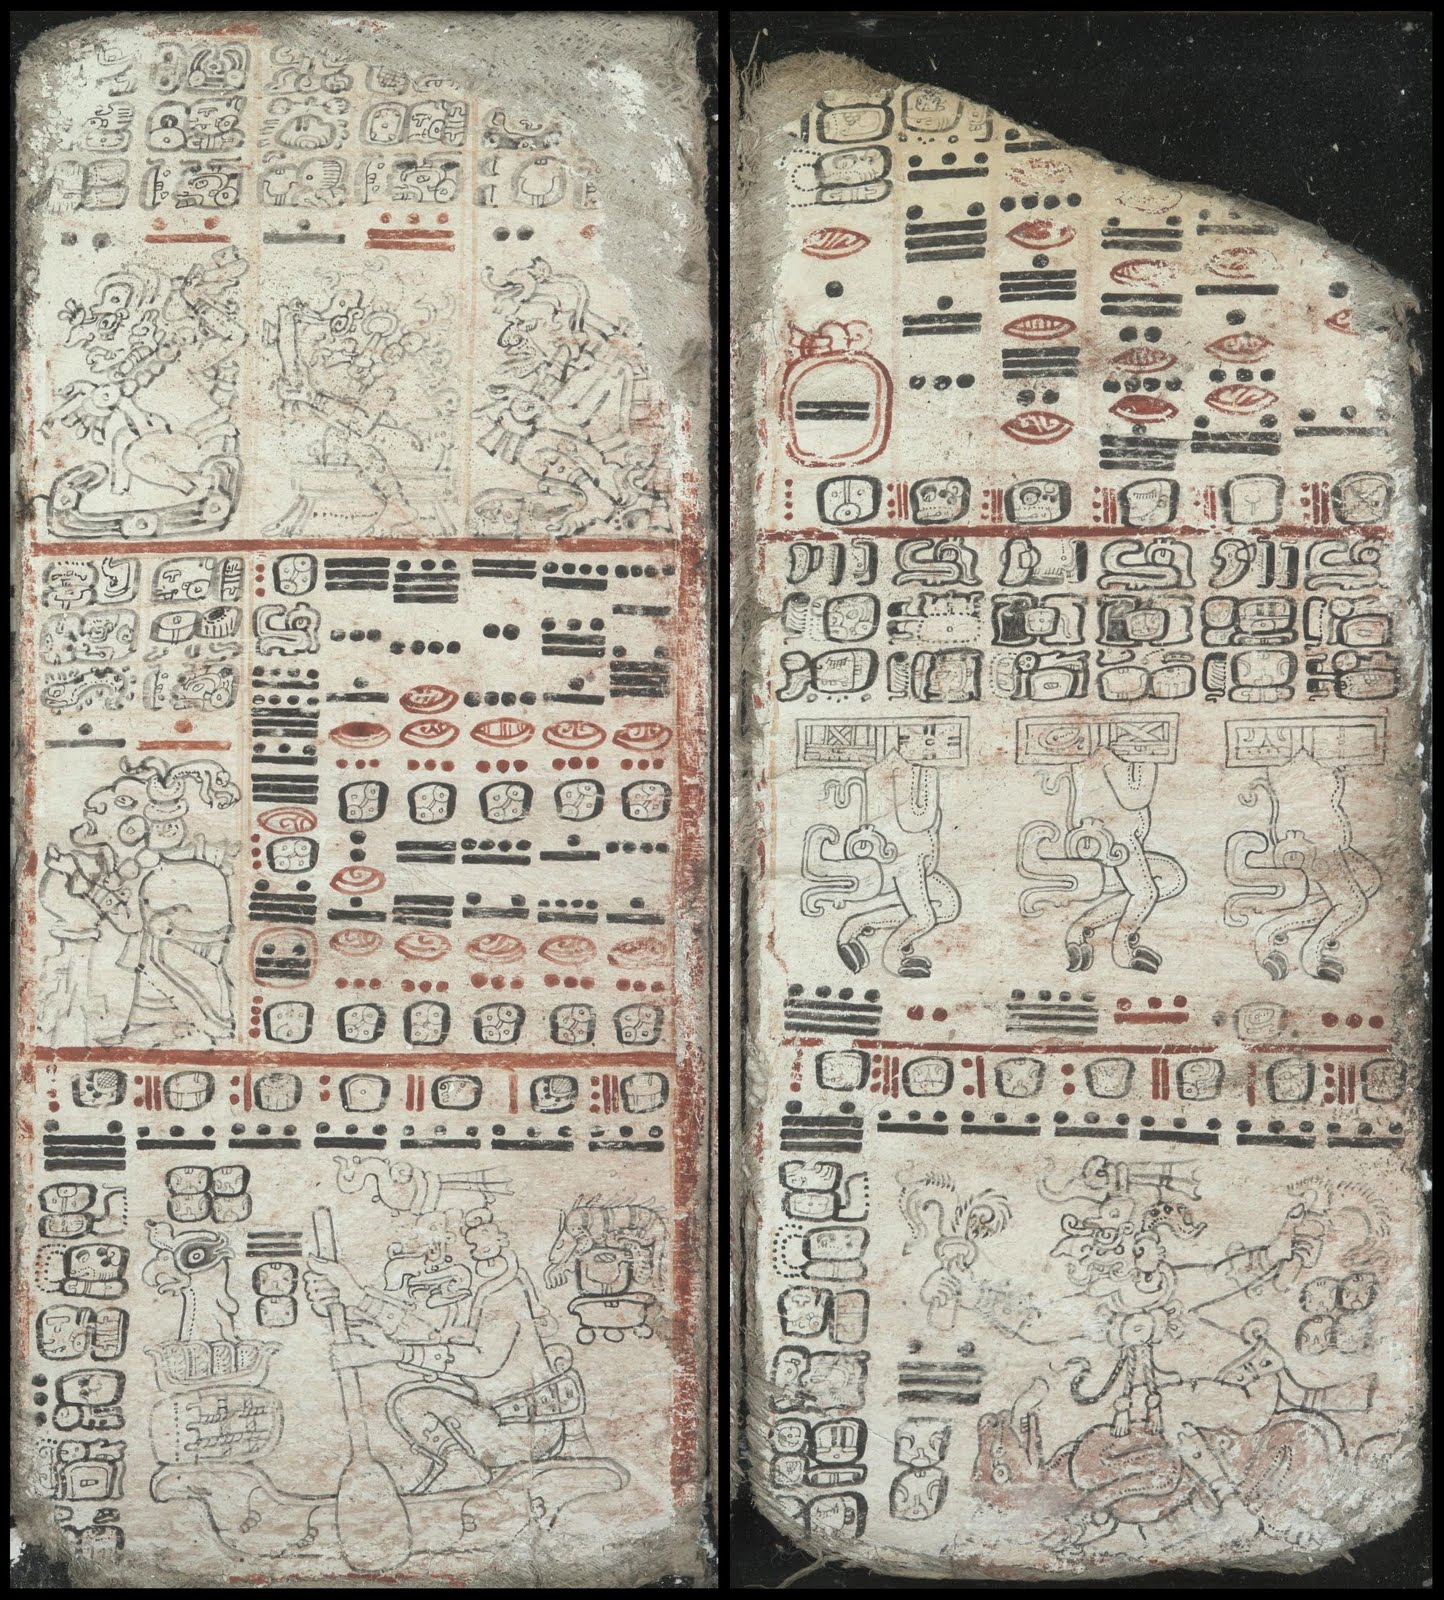 Mayan codex - Table for the Planet Mars